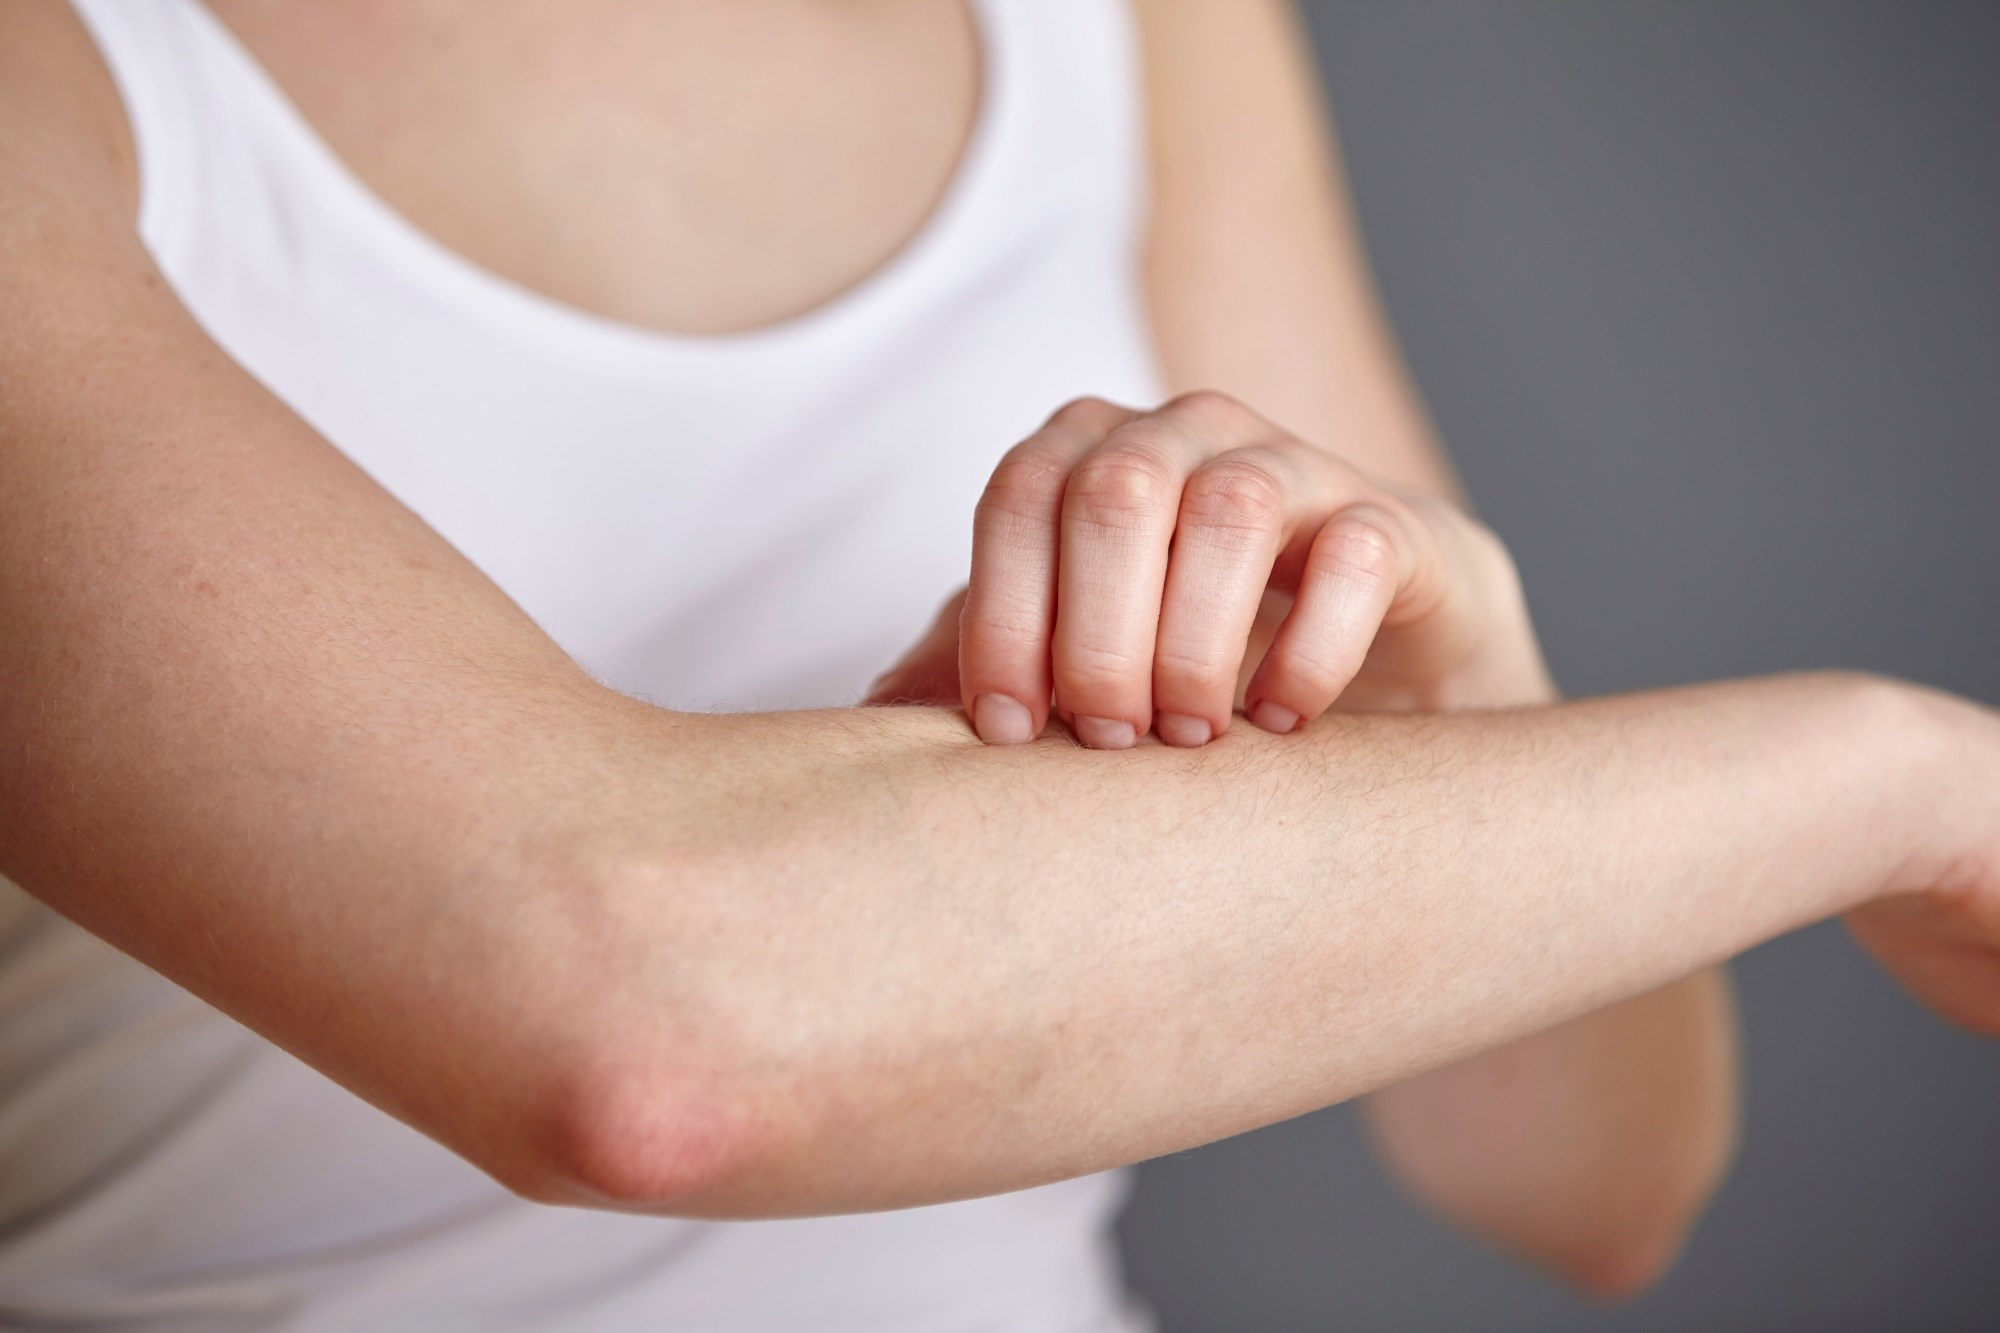 Menthoxypropanediol Provides Itch Relief in Atopic Dermatitis